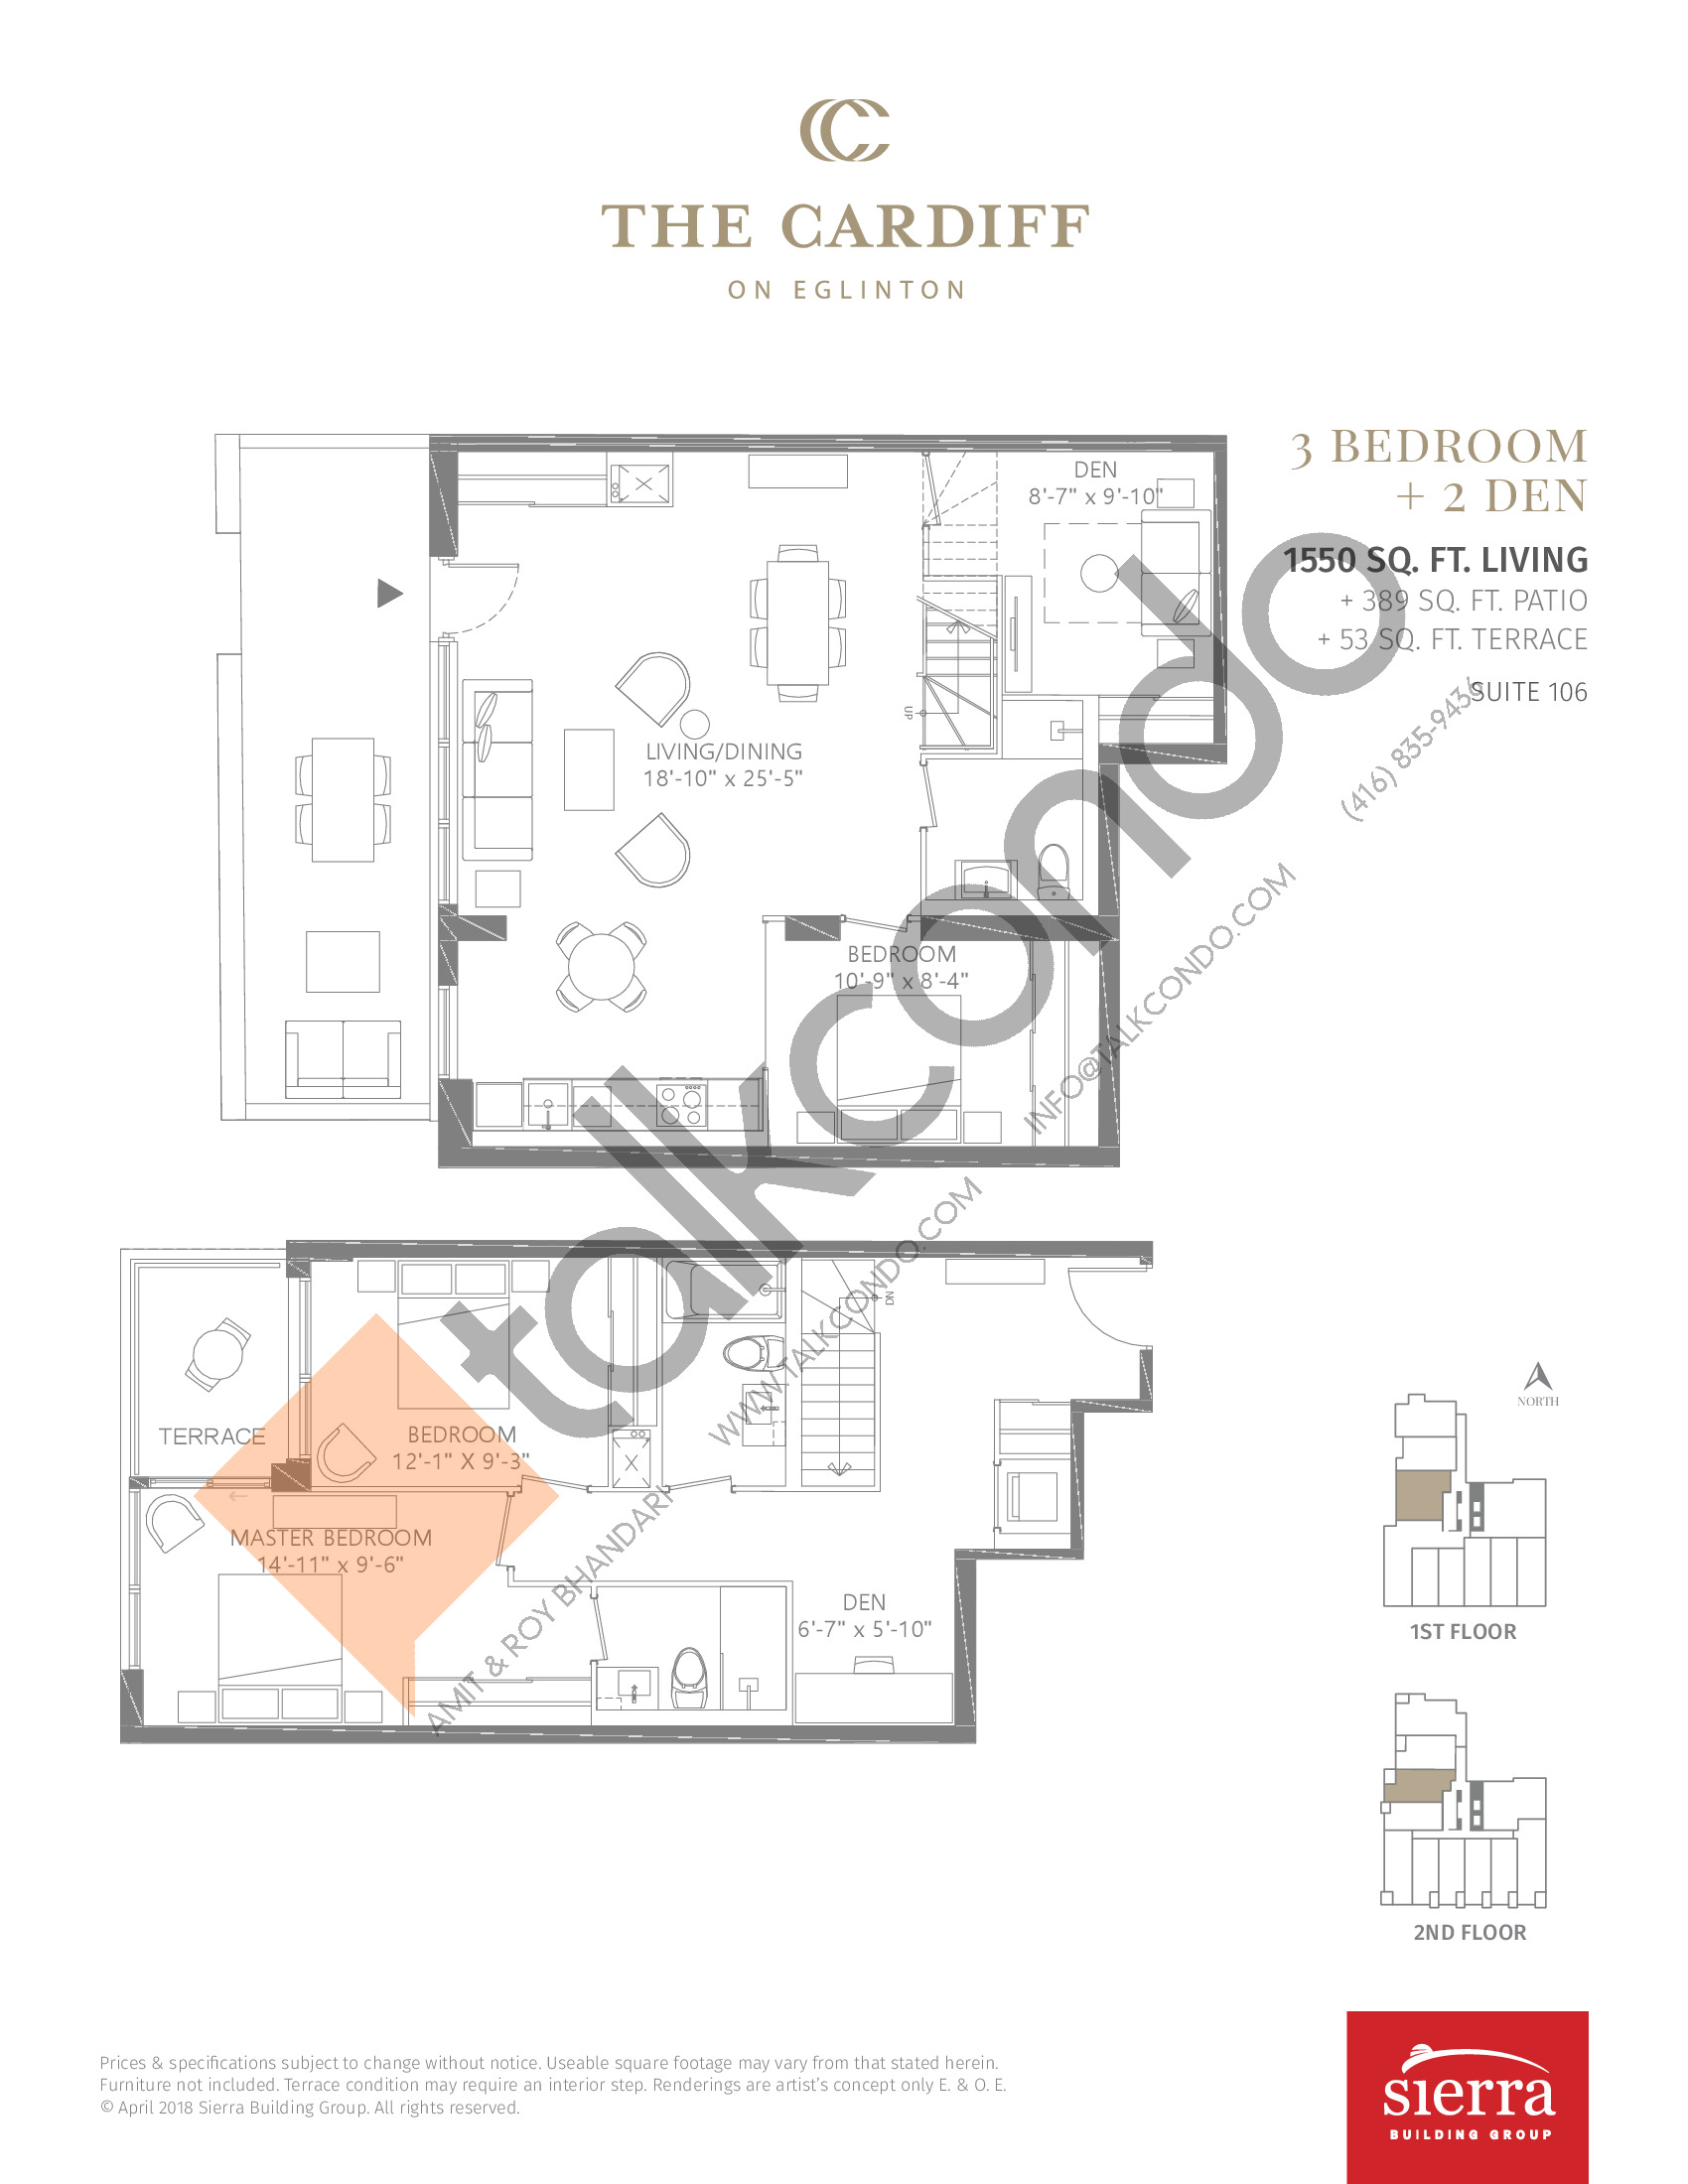 Suite 106 Floor Plan at The Cardiff Condos on Eglinton - 1550 sq.ft